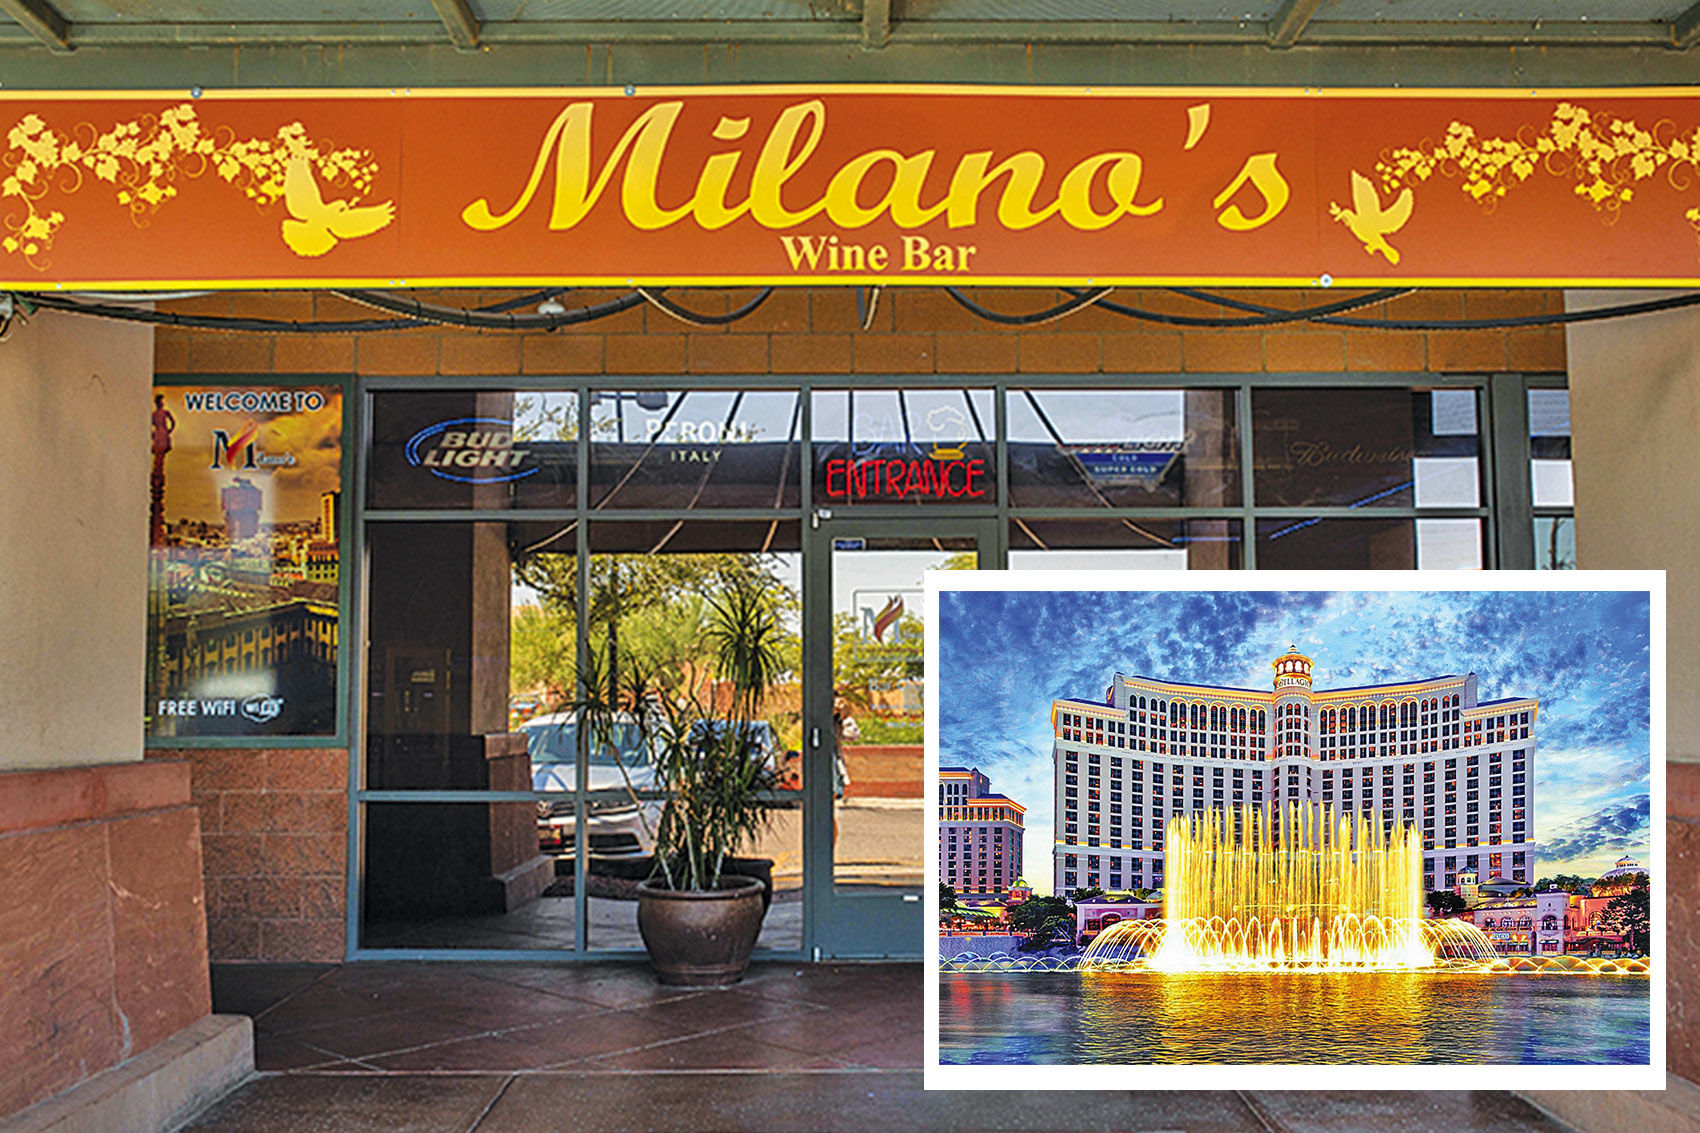 Vegas hotel/casino forces Mesa restaurant name change | East Valley Tribune